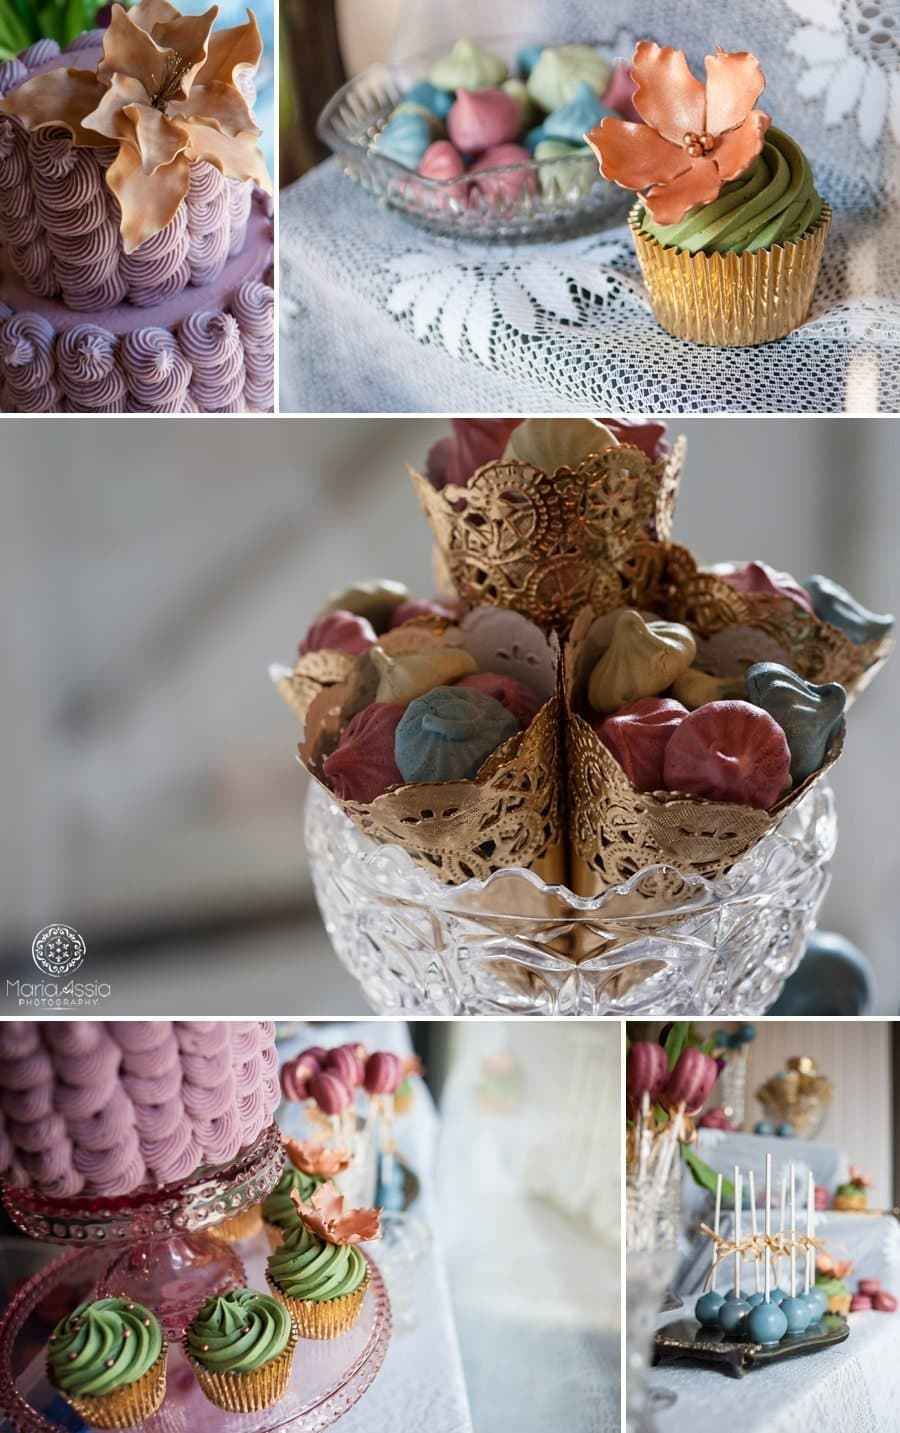 Delicious mouthwatering cakes